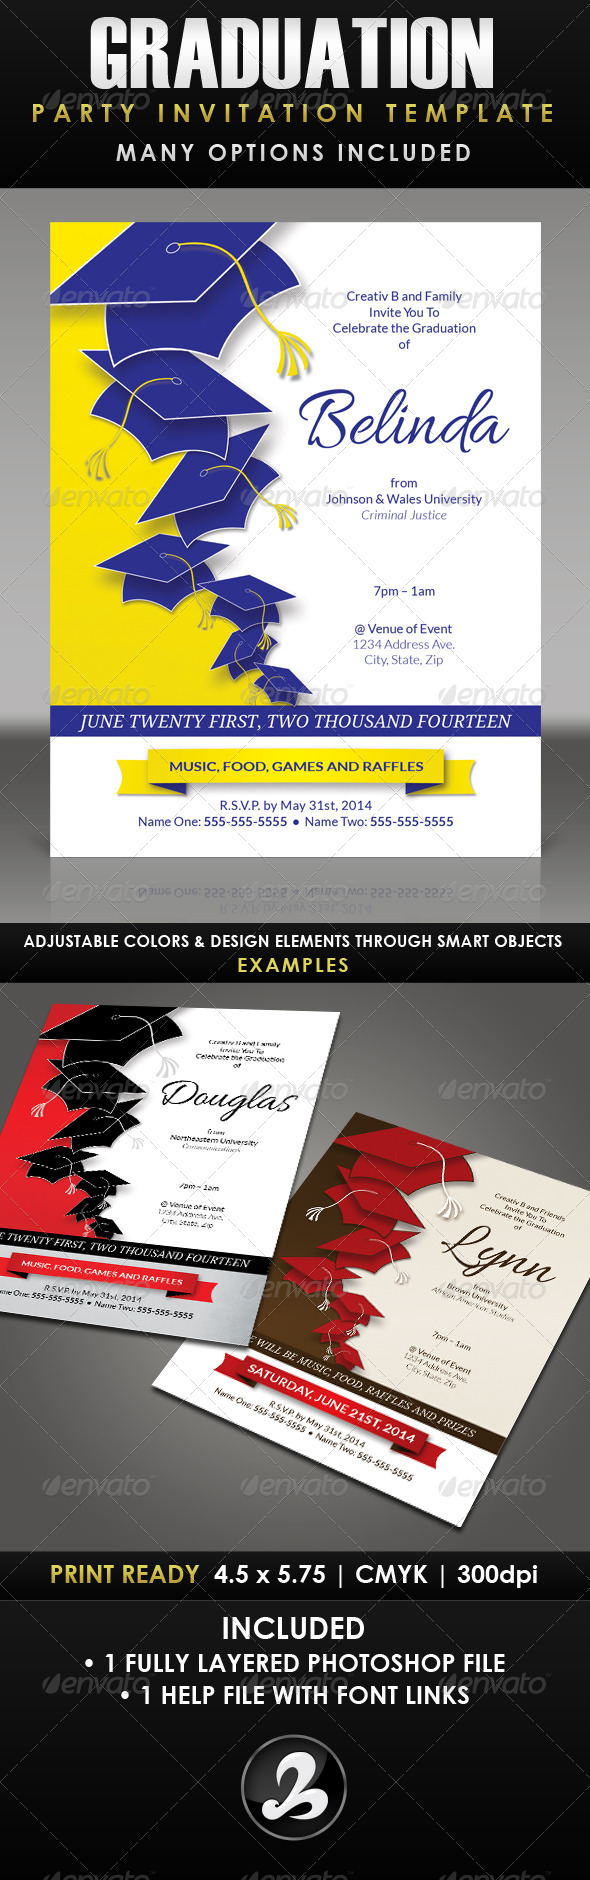 graduation party flyer templates free stock photos graphics. Black Bedroom Furniture Sets. Home Design Ideas